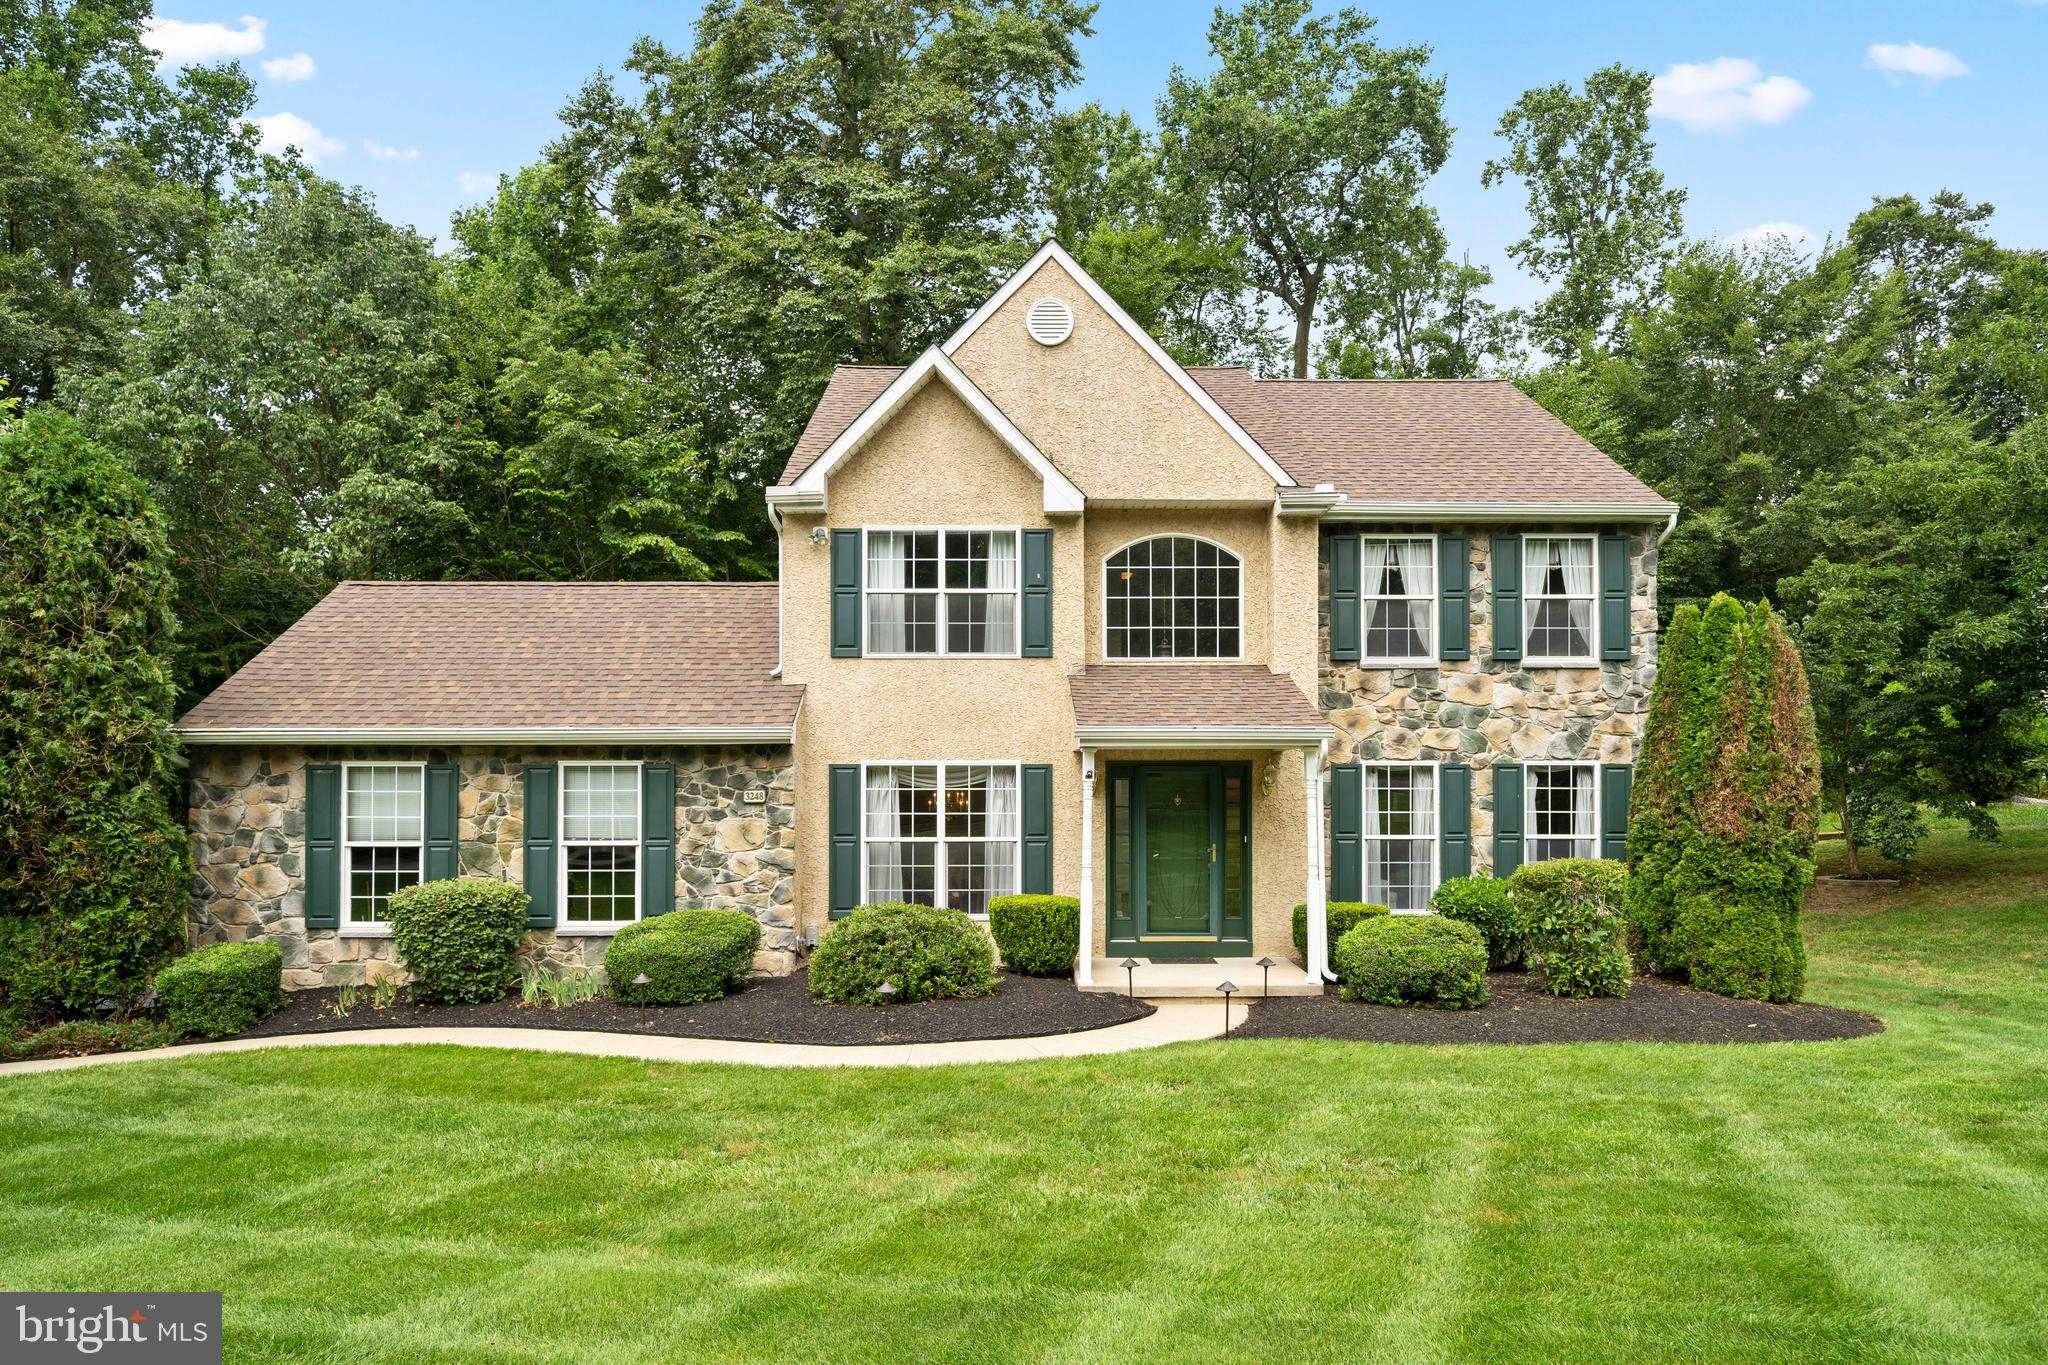 3248 CHARLES GRIFFIN DRIVE, GARNET VALLEY, PA 19061